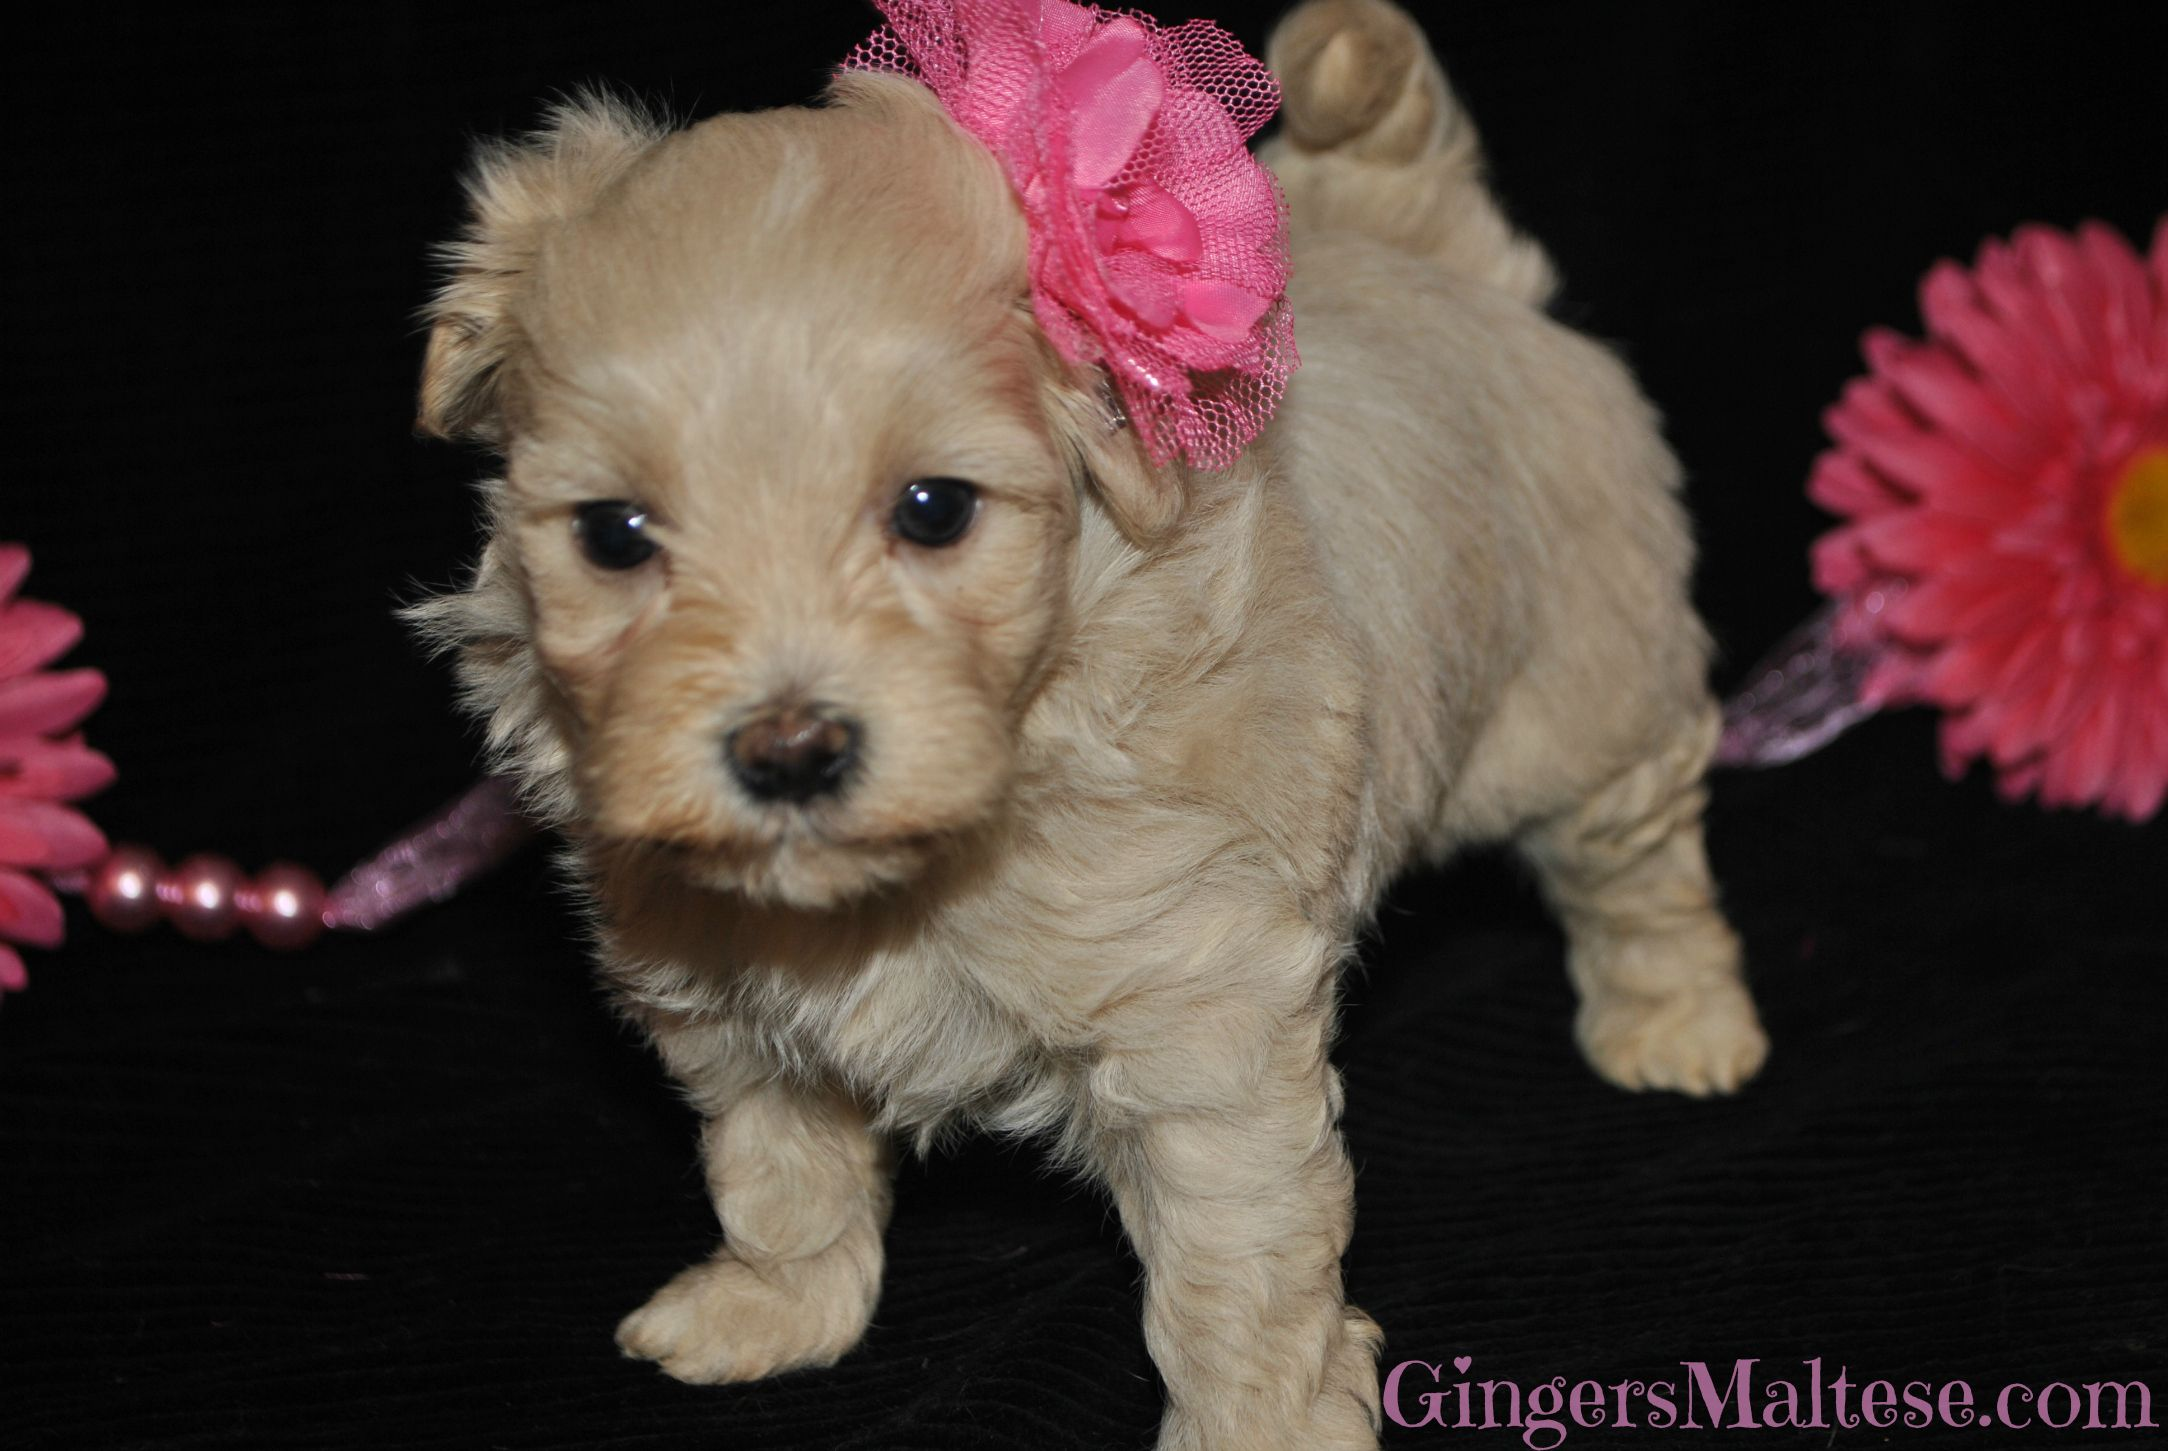 Maltipoo Puppies For Sale near Raleigh NC. Maltepoo Puppies for sale.